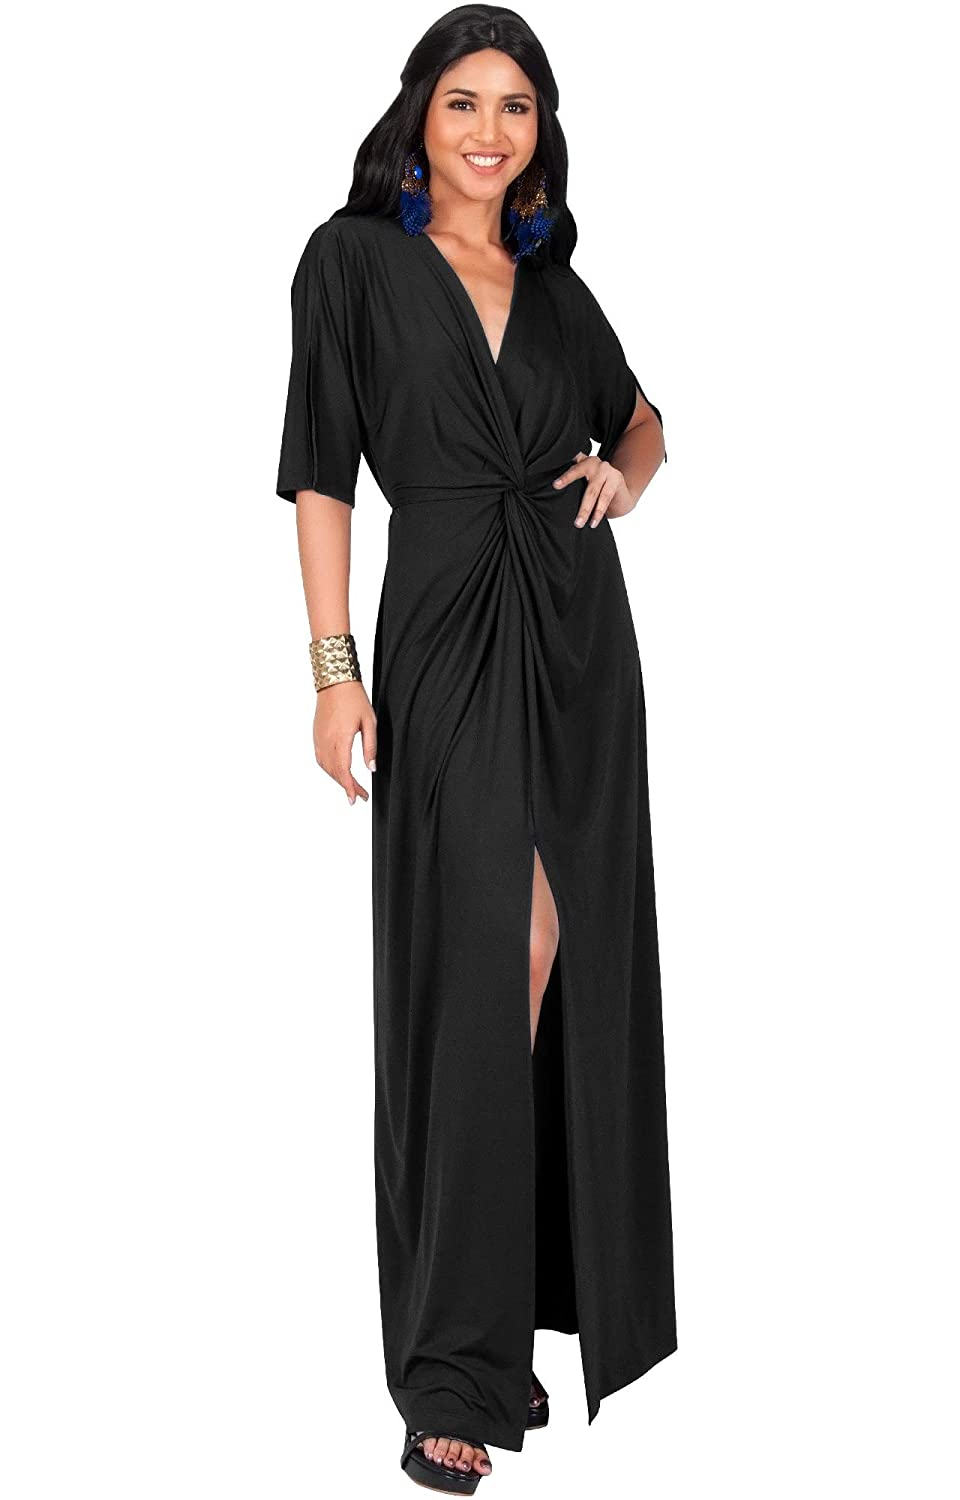 Slimming Dresses For Plus Size - Ficts